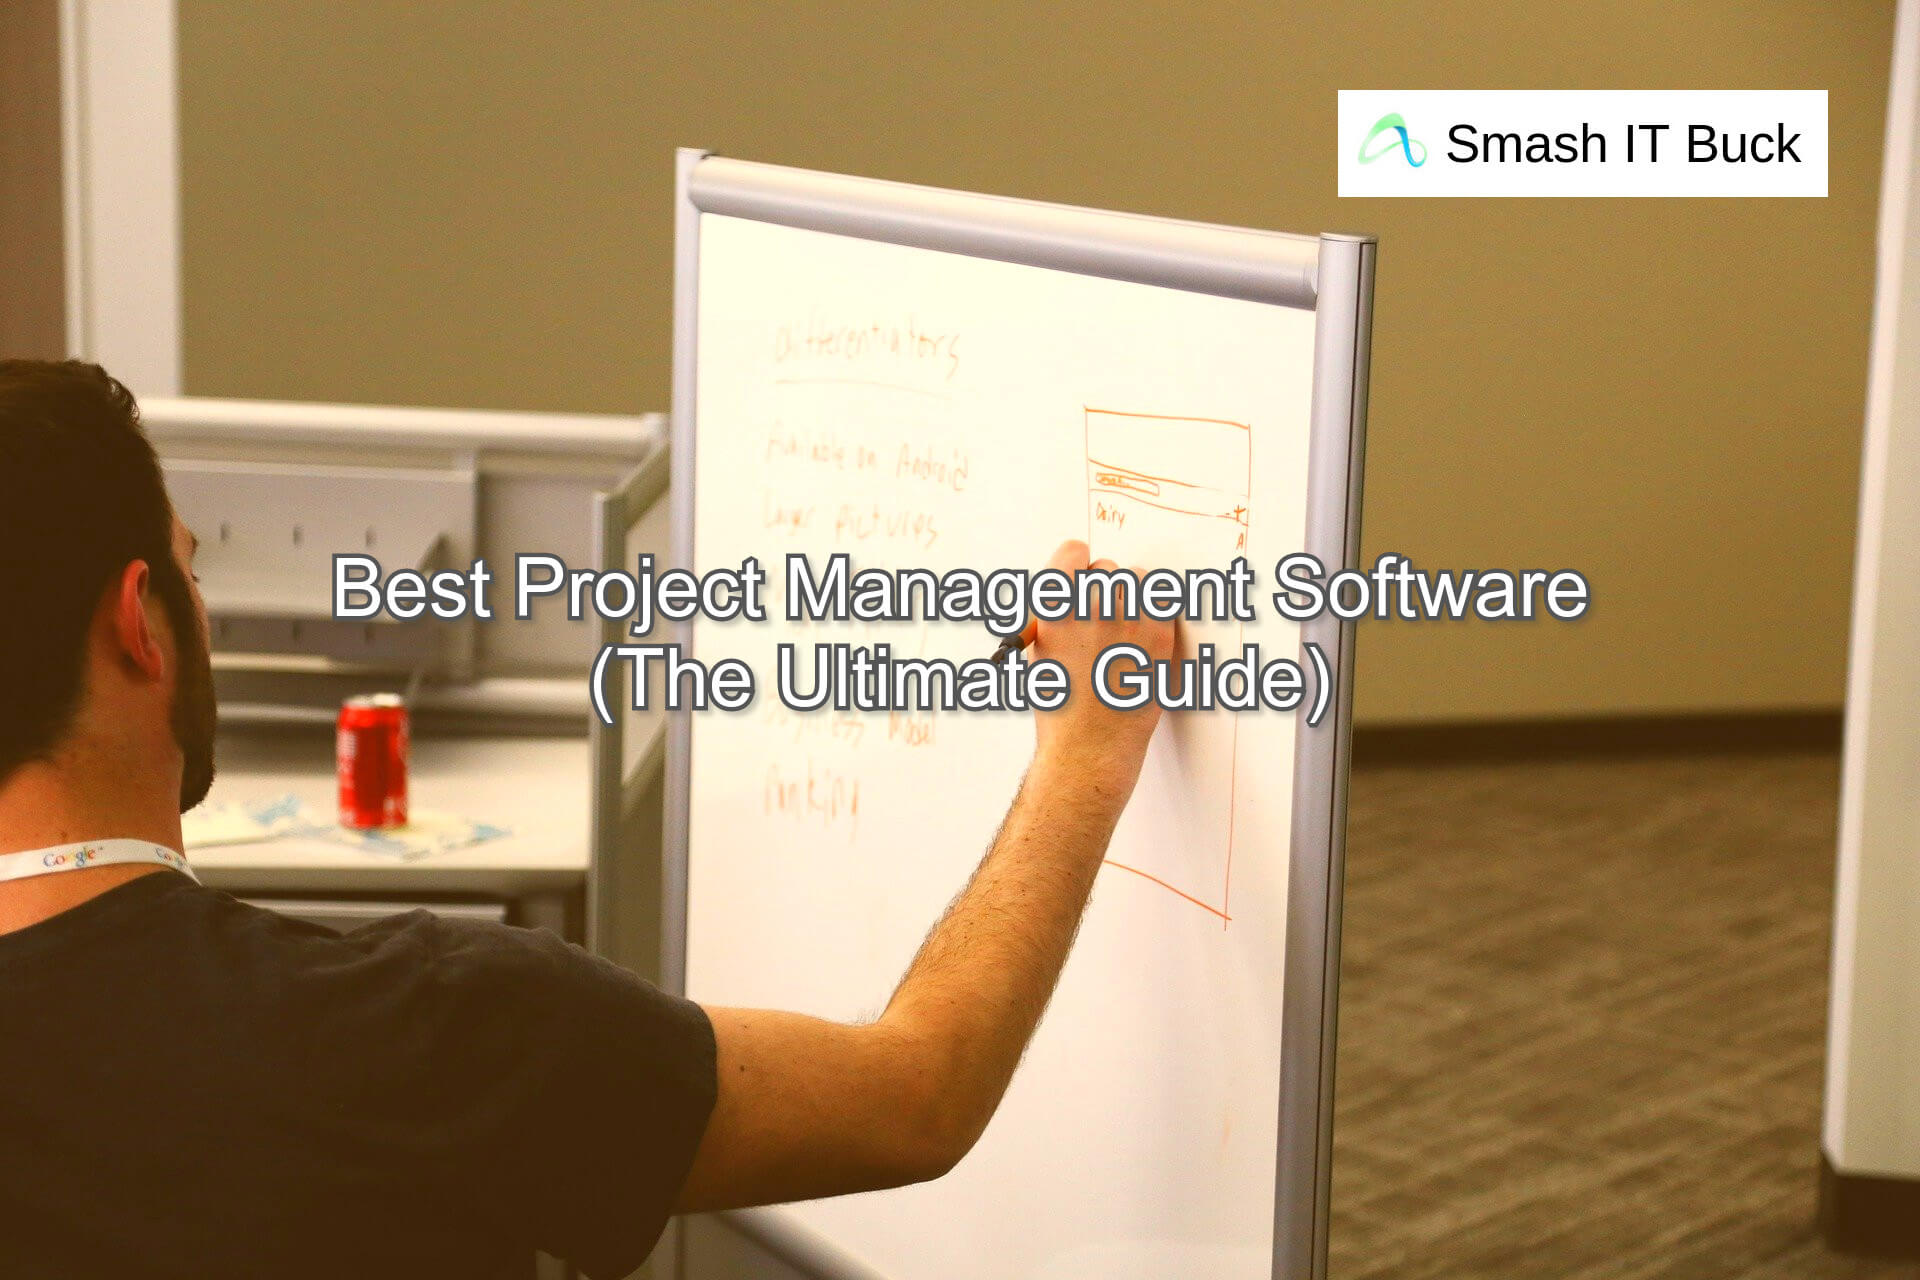 Best Project Management Software and Tools 2021